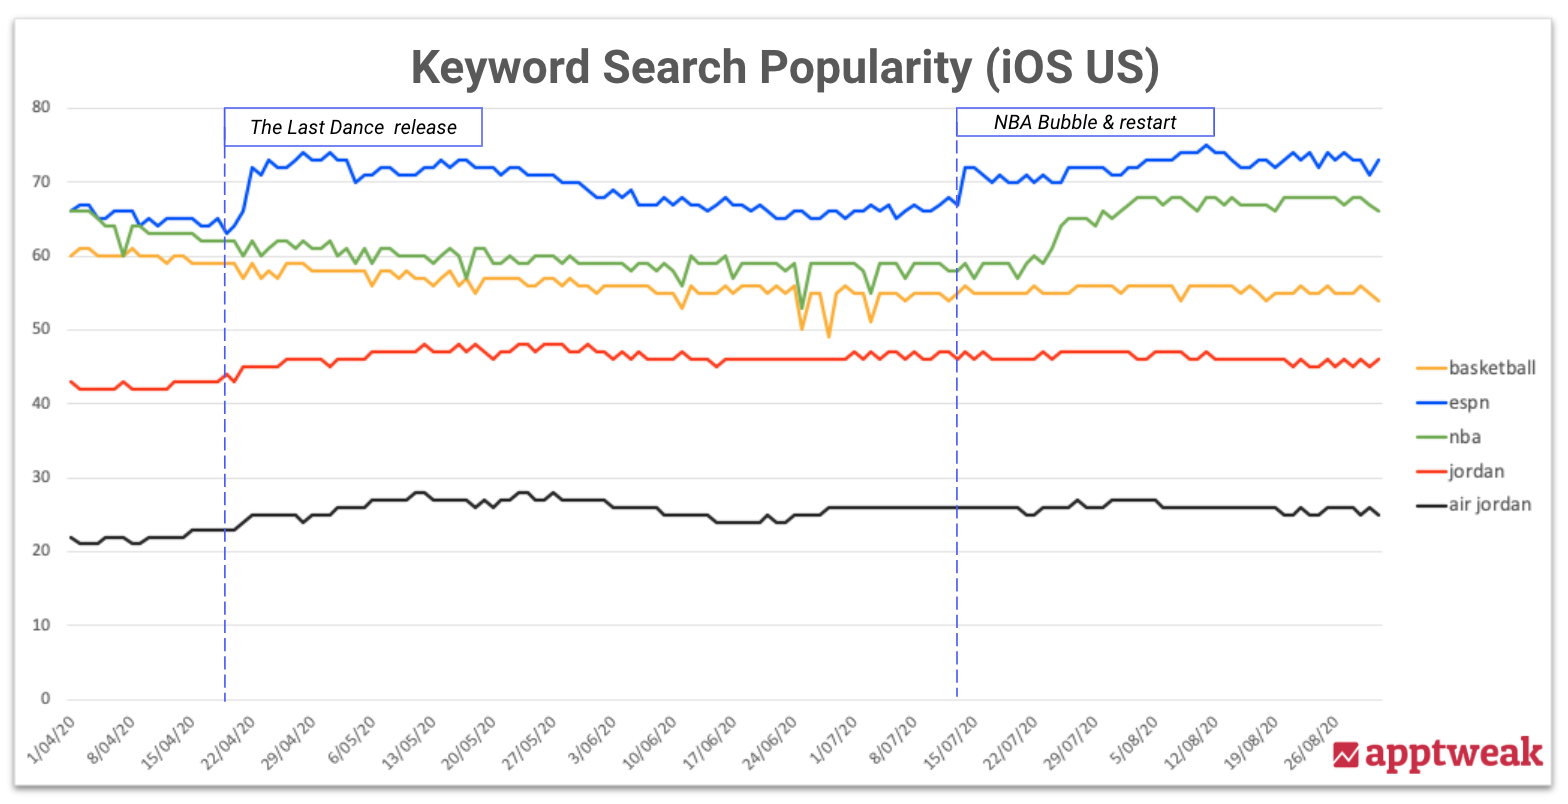 iOS search popularity graph for basketball related apps' keywords